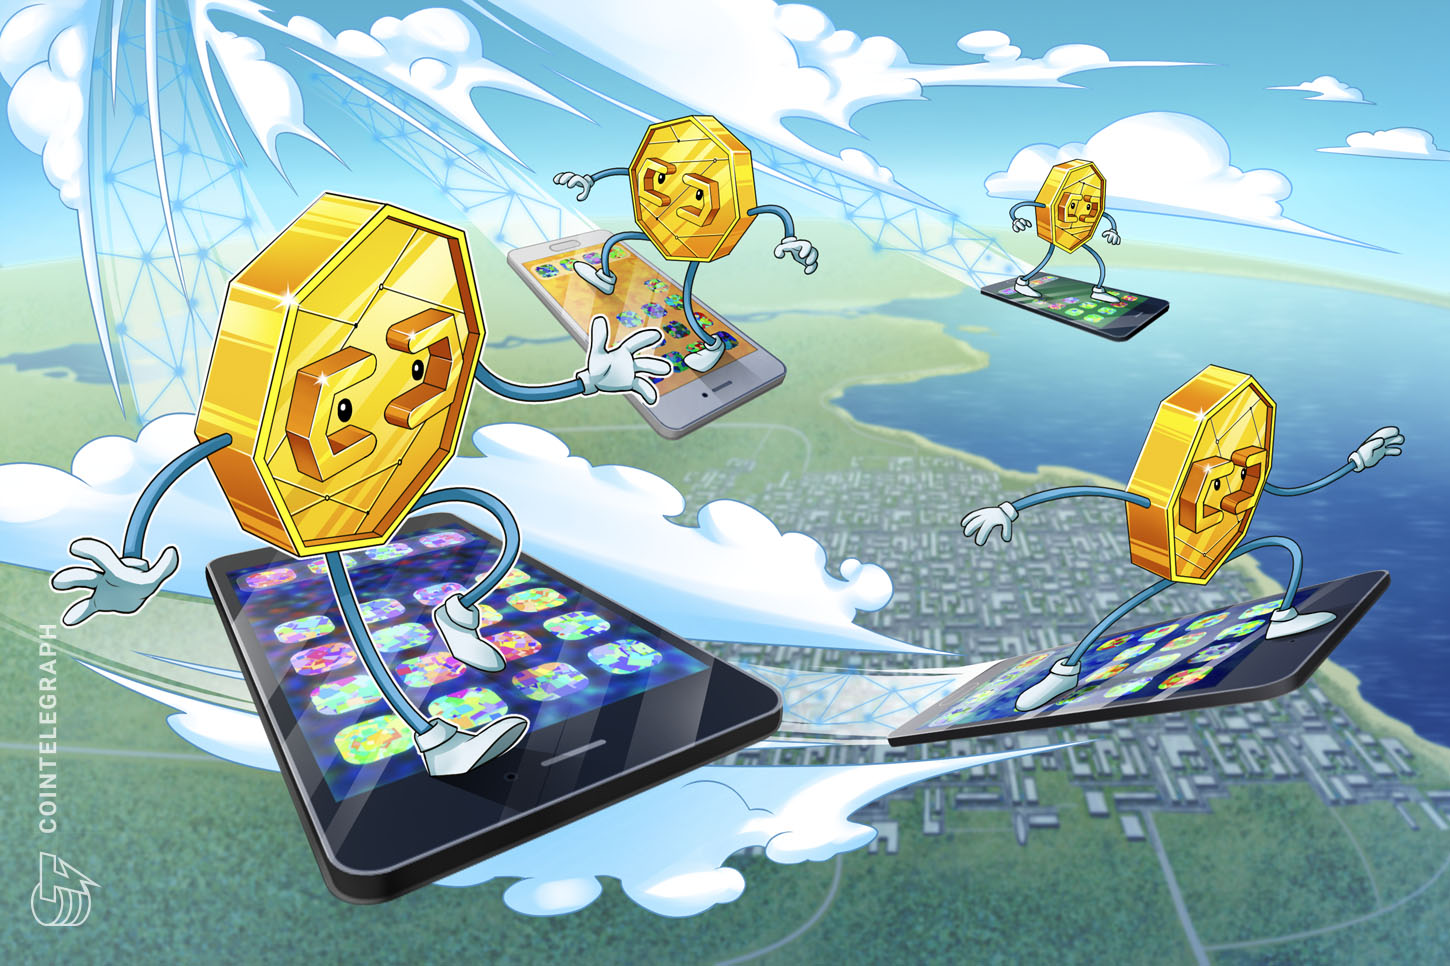 Crypto businesses keep showing interest in the Indian market by attracting users through products like mobile apps.